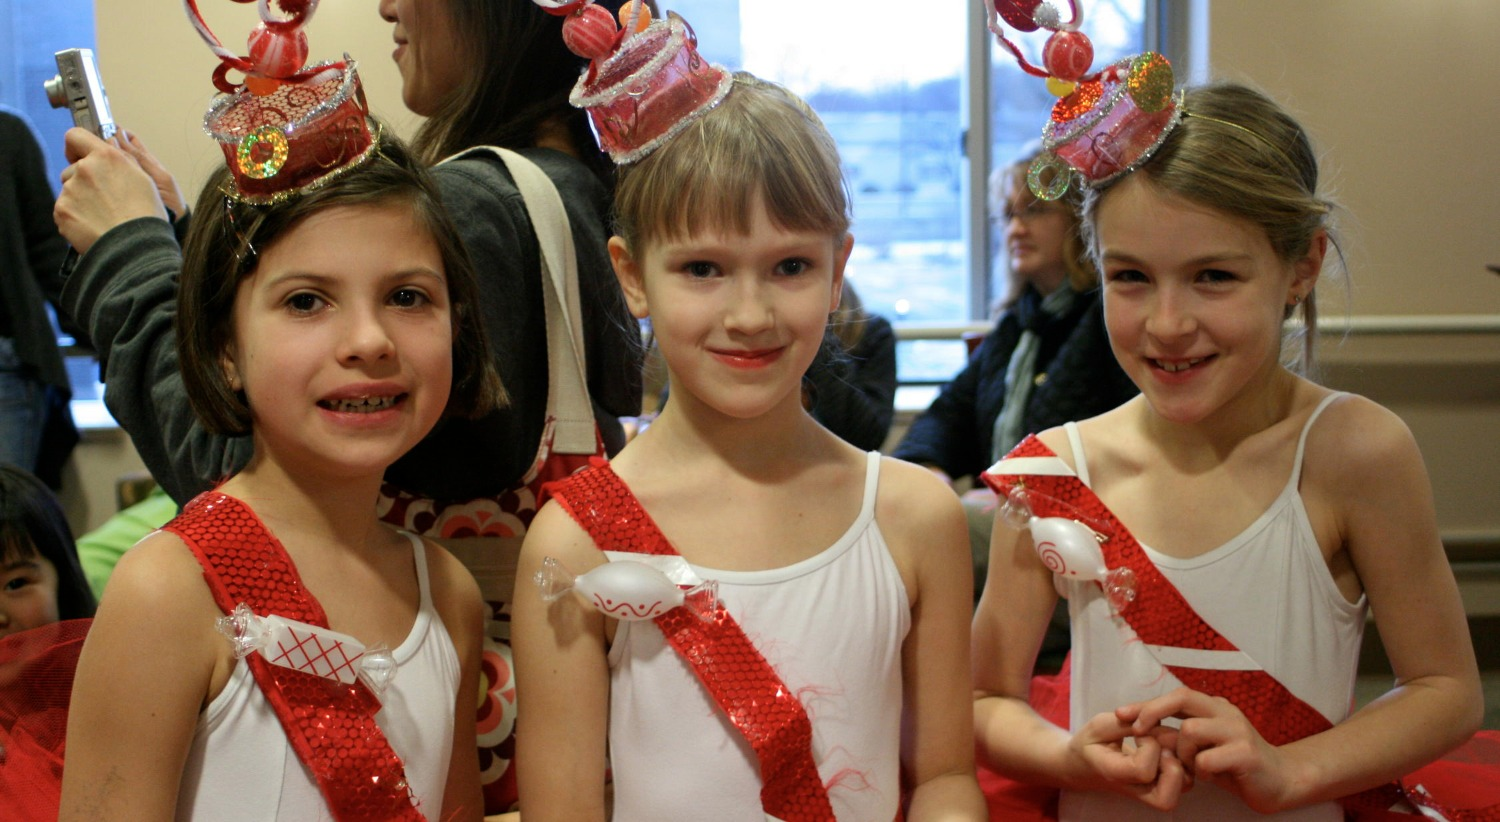 Nutcracker - Candy Canes backstage